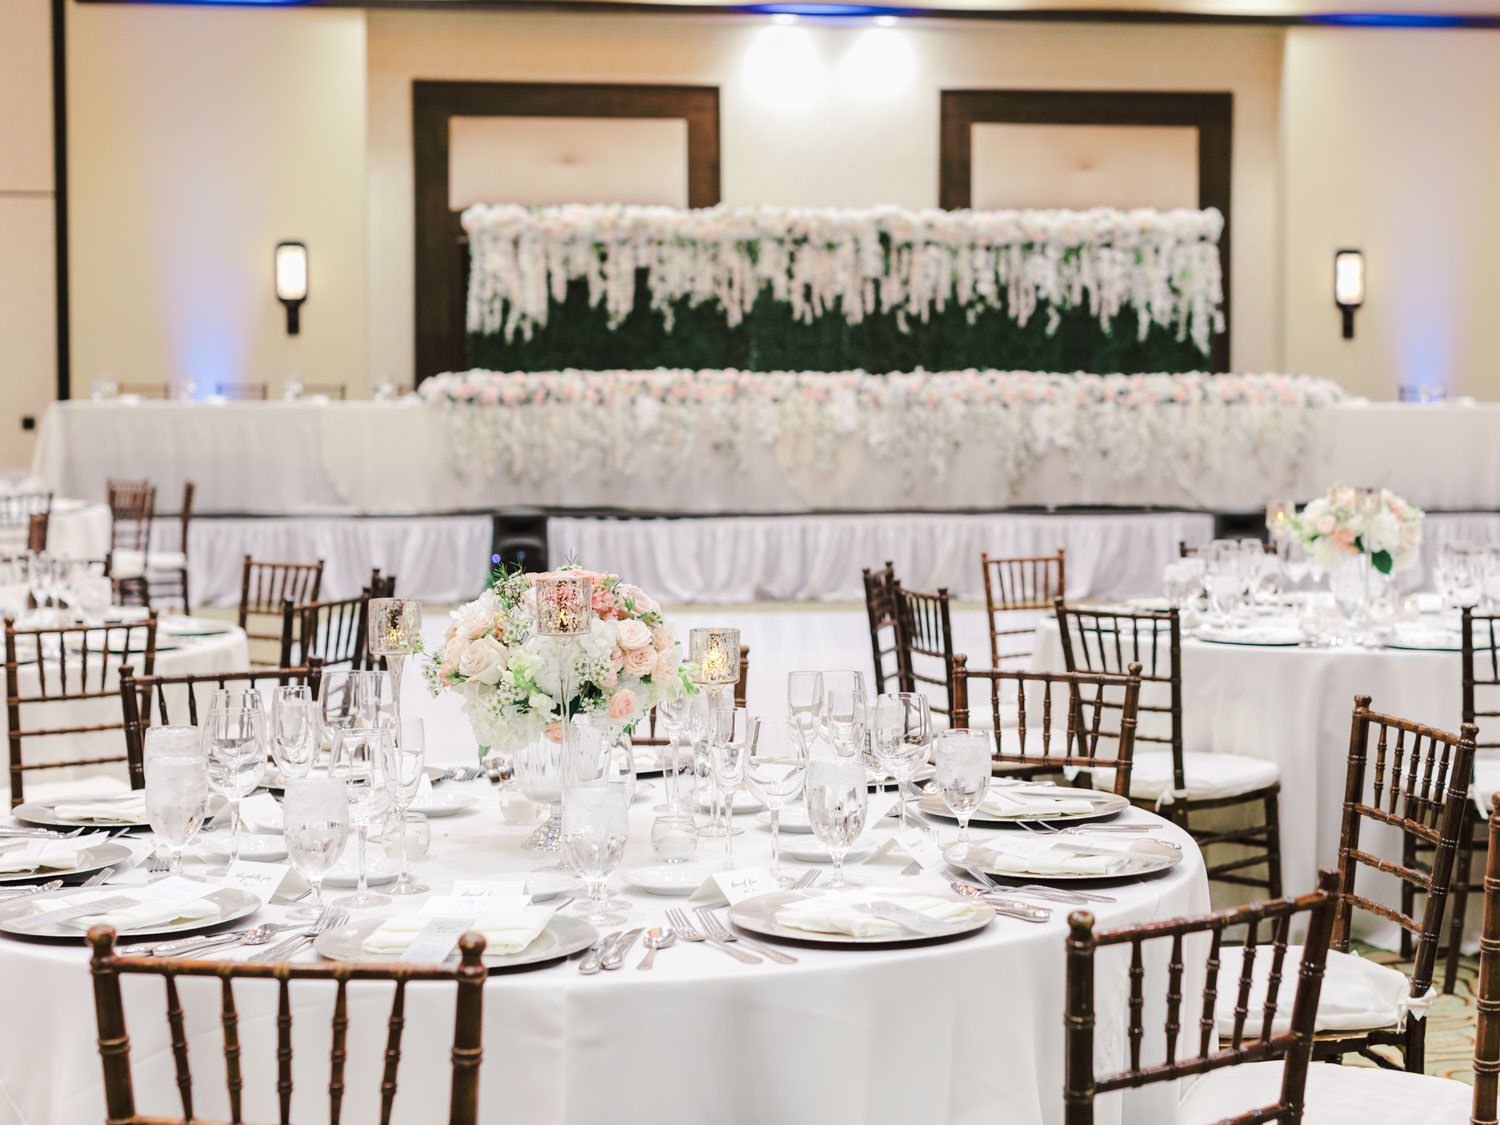 Reception with white linens, oak Chiavari chairs, and ivory, blush, and green centerpieces. Head table on a stage with a greenery wall backdrop. Wedding at Rancho Bernardo Inn in the Aragon Ballroom. photo by Cavin Elizabeth Photography